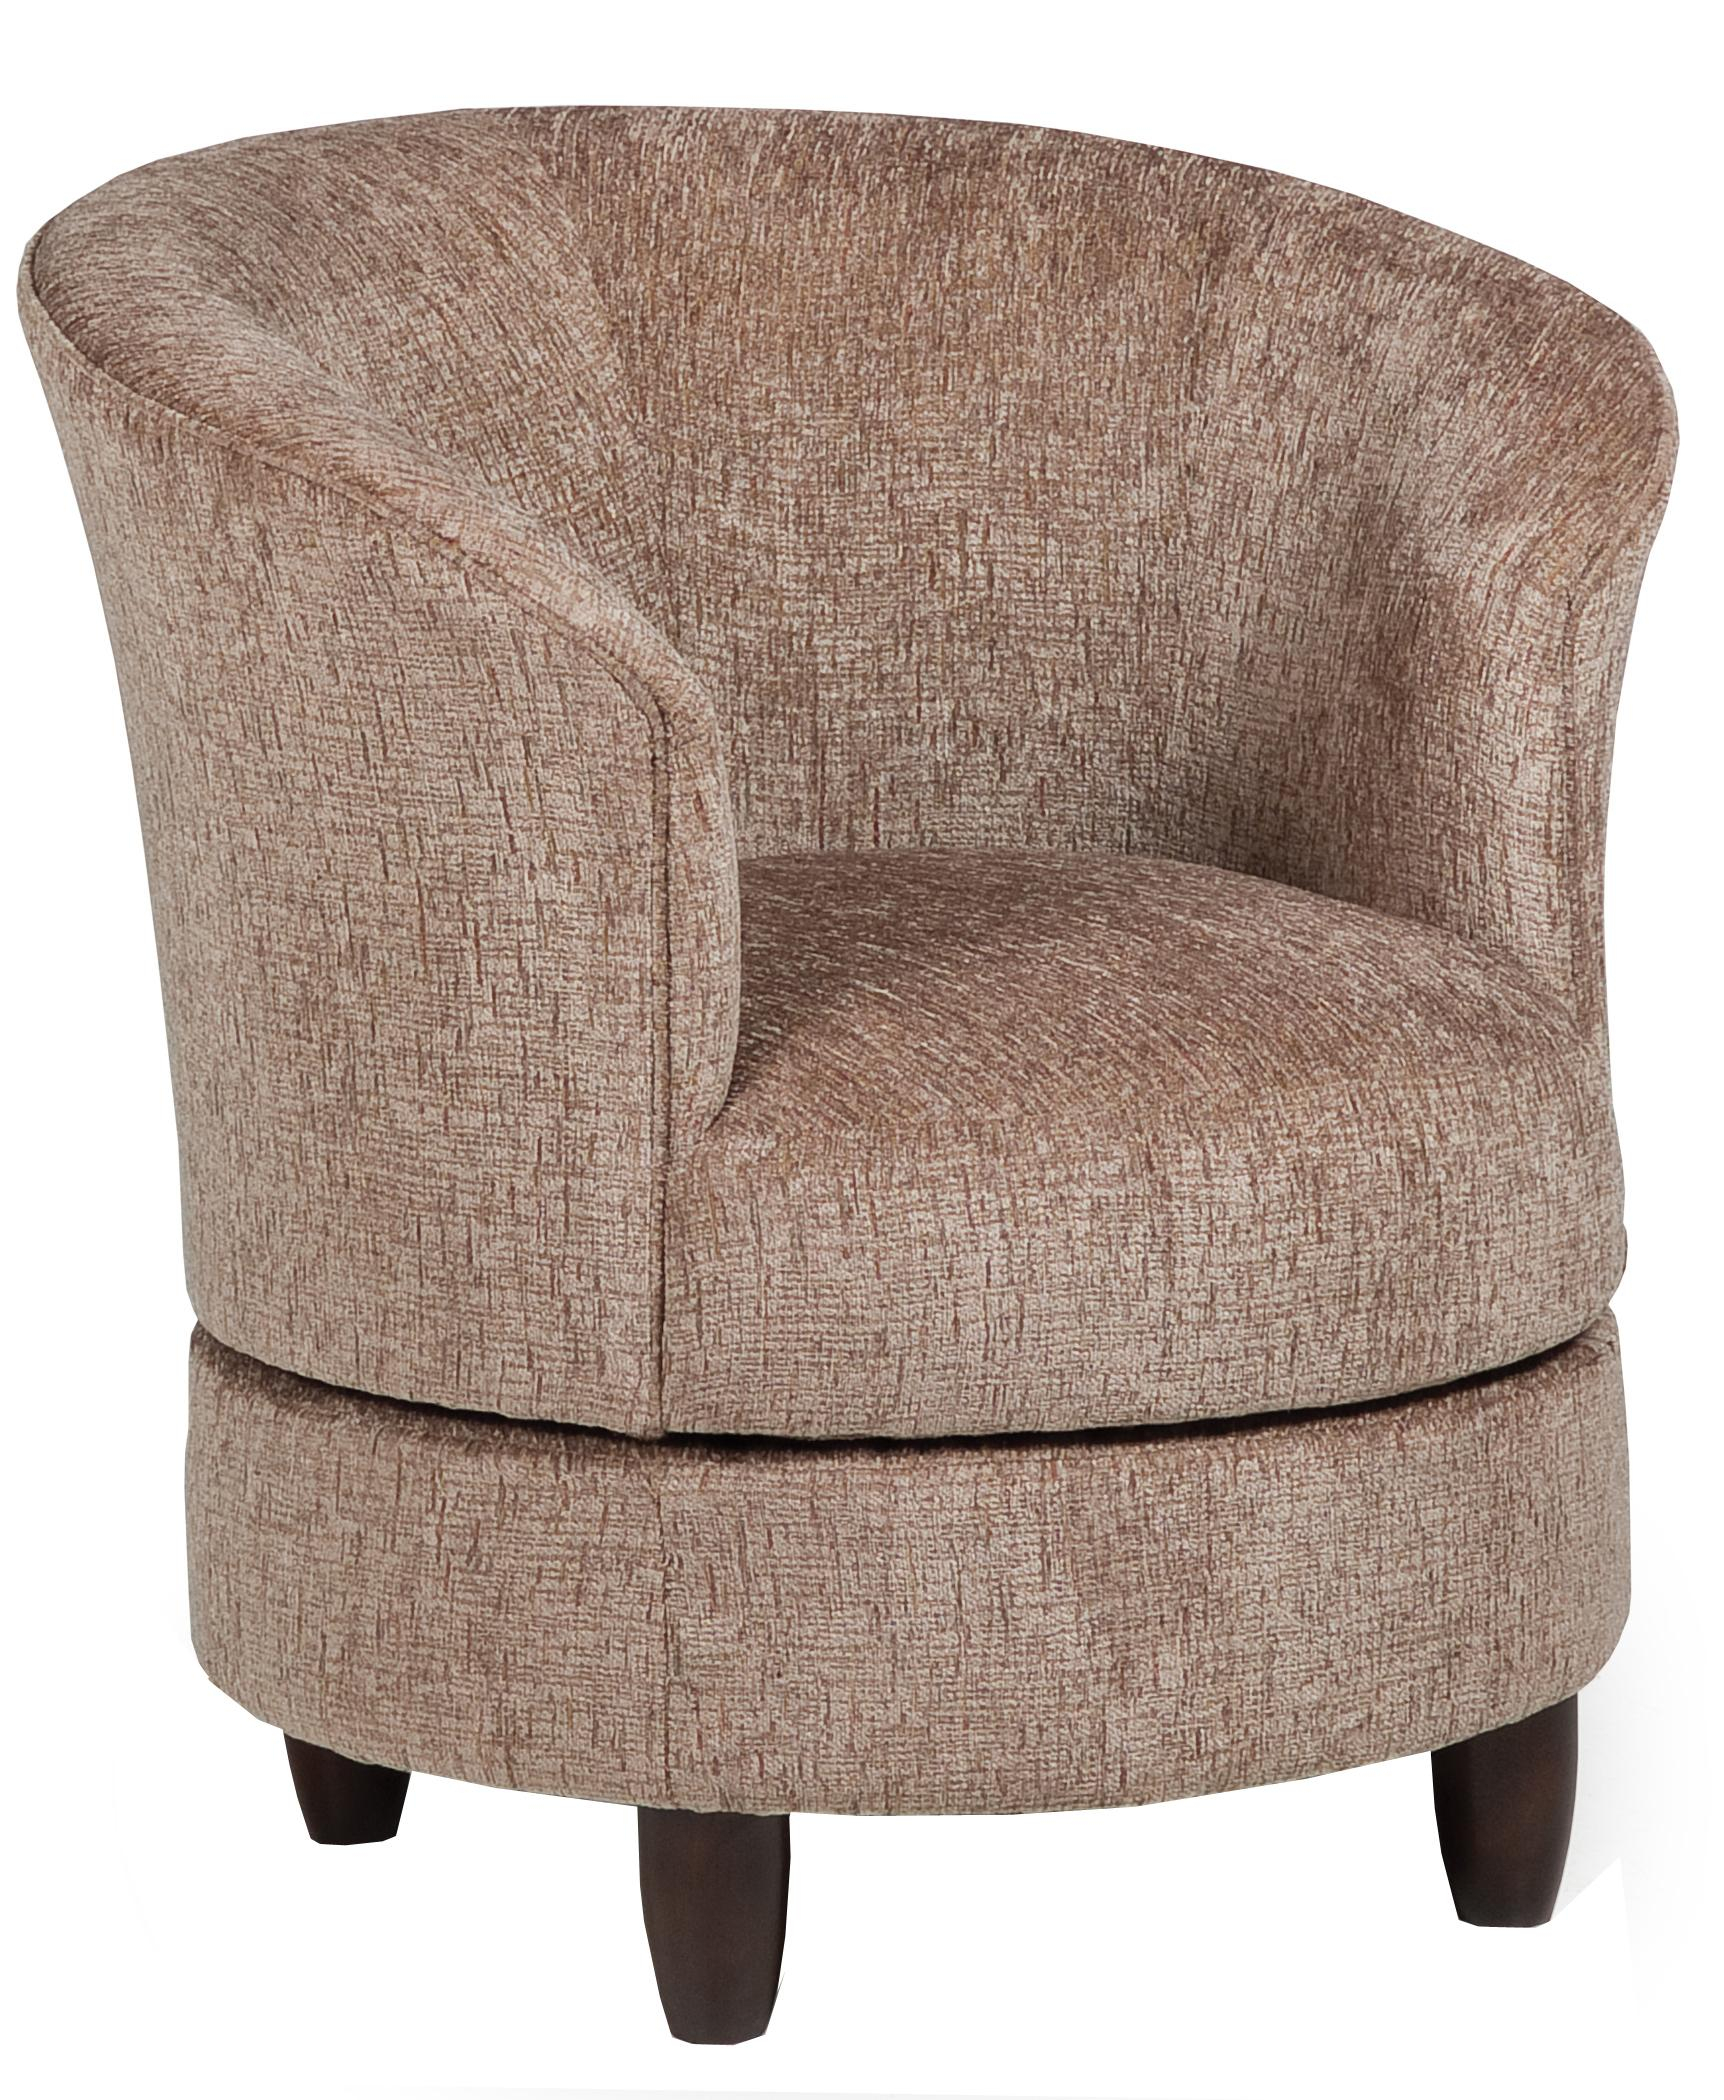 Best Home Furnishings Accent Chairs Swivel Barrel Chair | Rune's Inside Umber Grey Swivel Accent Chairs (View 5 of 20)